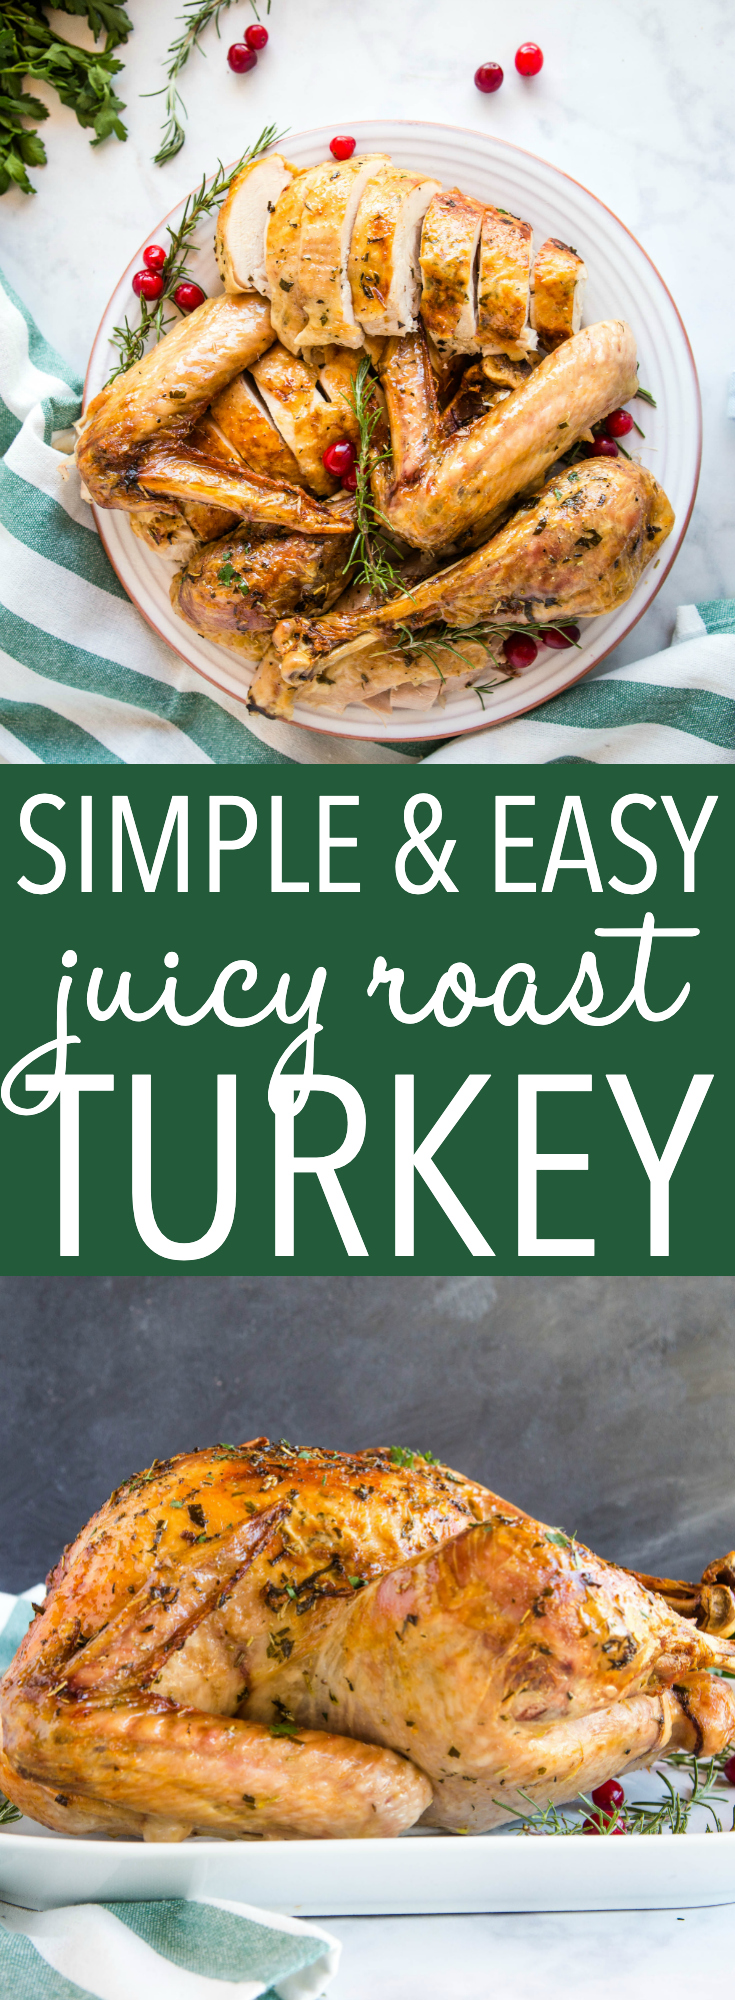 This roasted turkey recipe is the perfect way to make it for Thanksgiving or Christmas. Use my no-fail tips for delicious juicy turkey every time! Recipe from thebusybaker.ca! #thanksgiving #roastedturkeyrecipe #juicyturkey #christmas #dinner #nofail #holidaytable via @busybakerblog